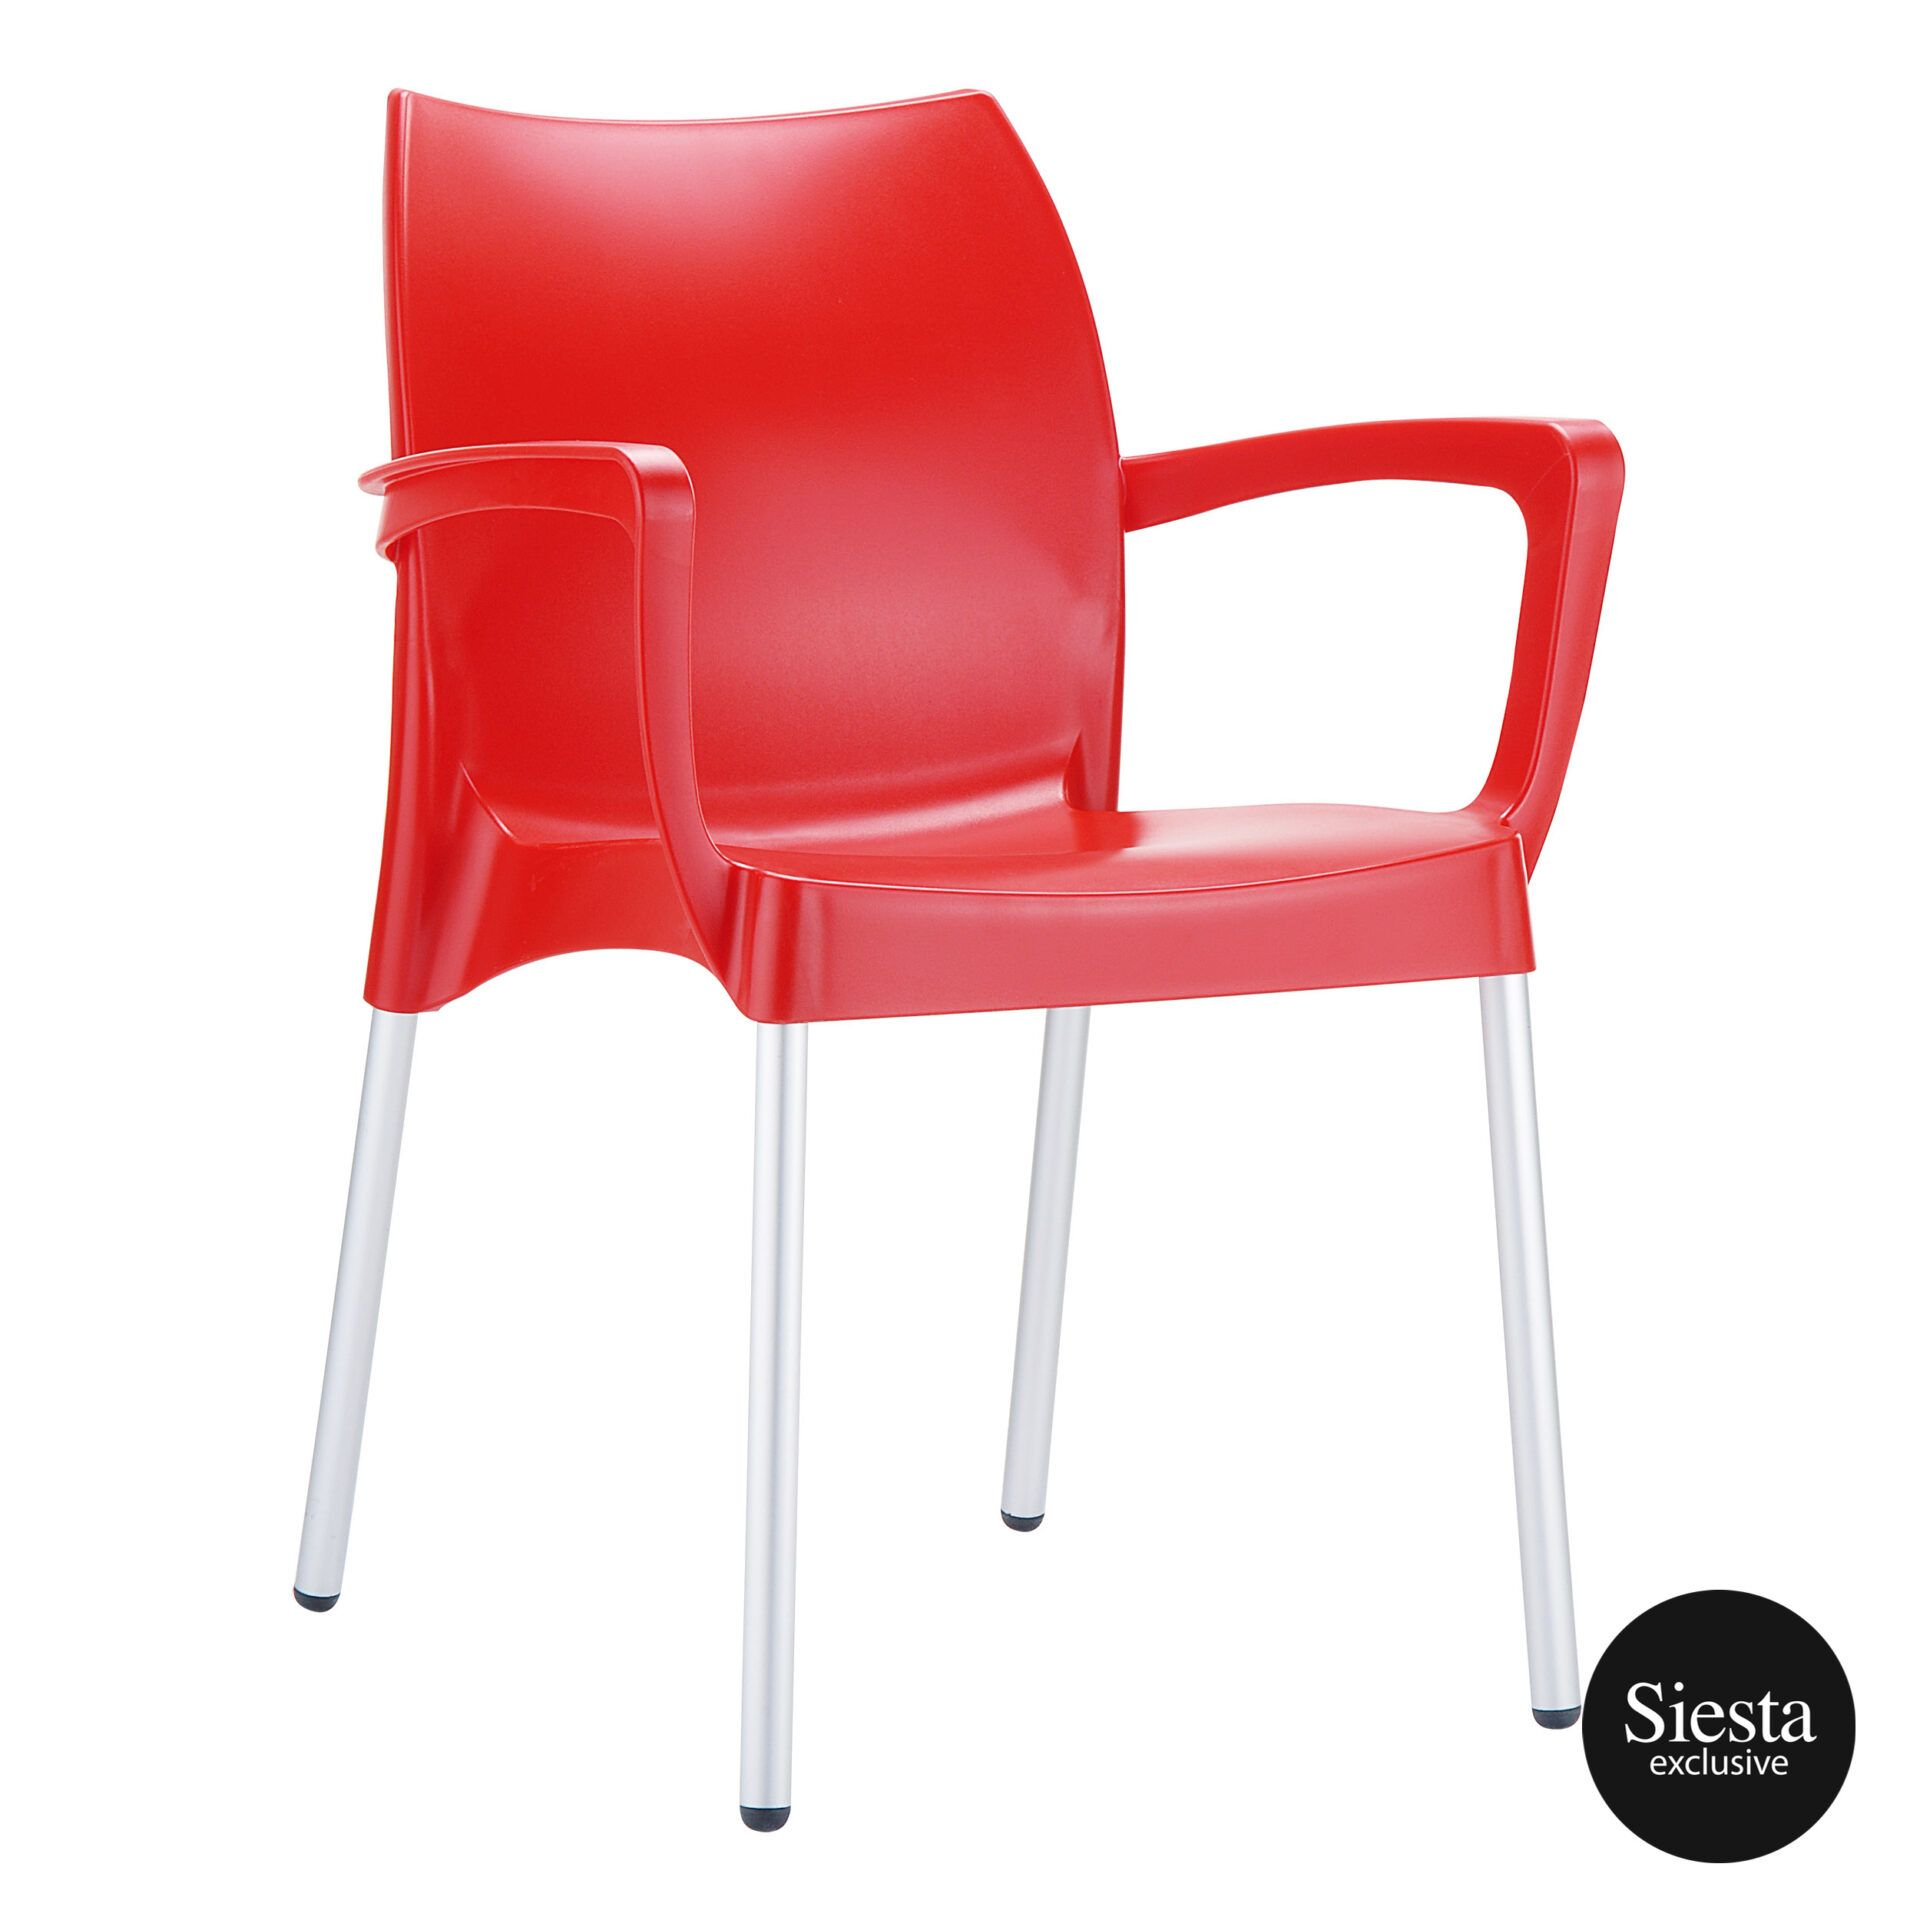 commercial polypropylene dolce chair red front side 1